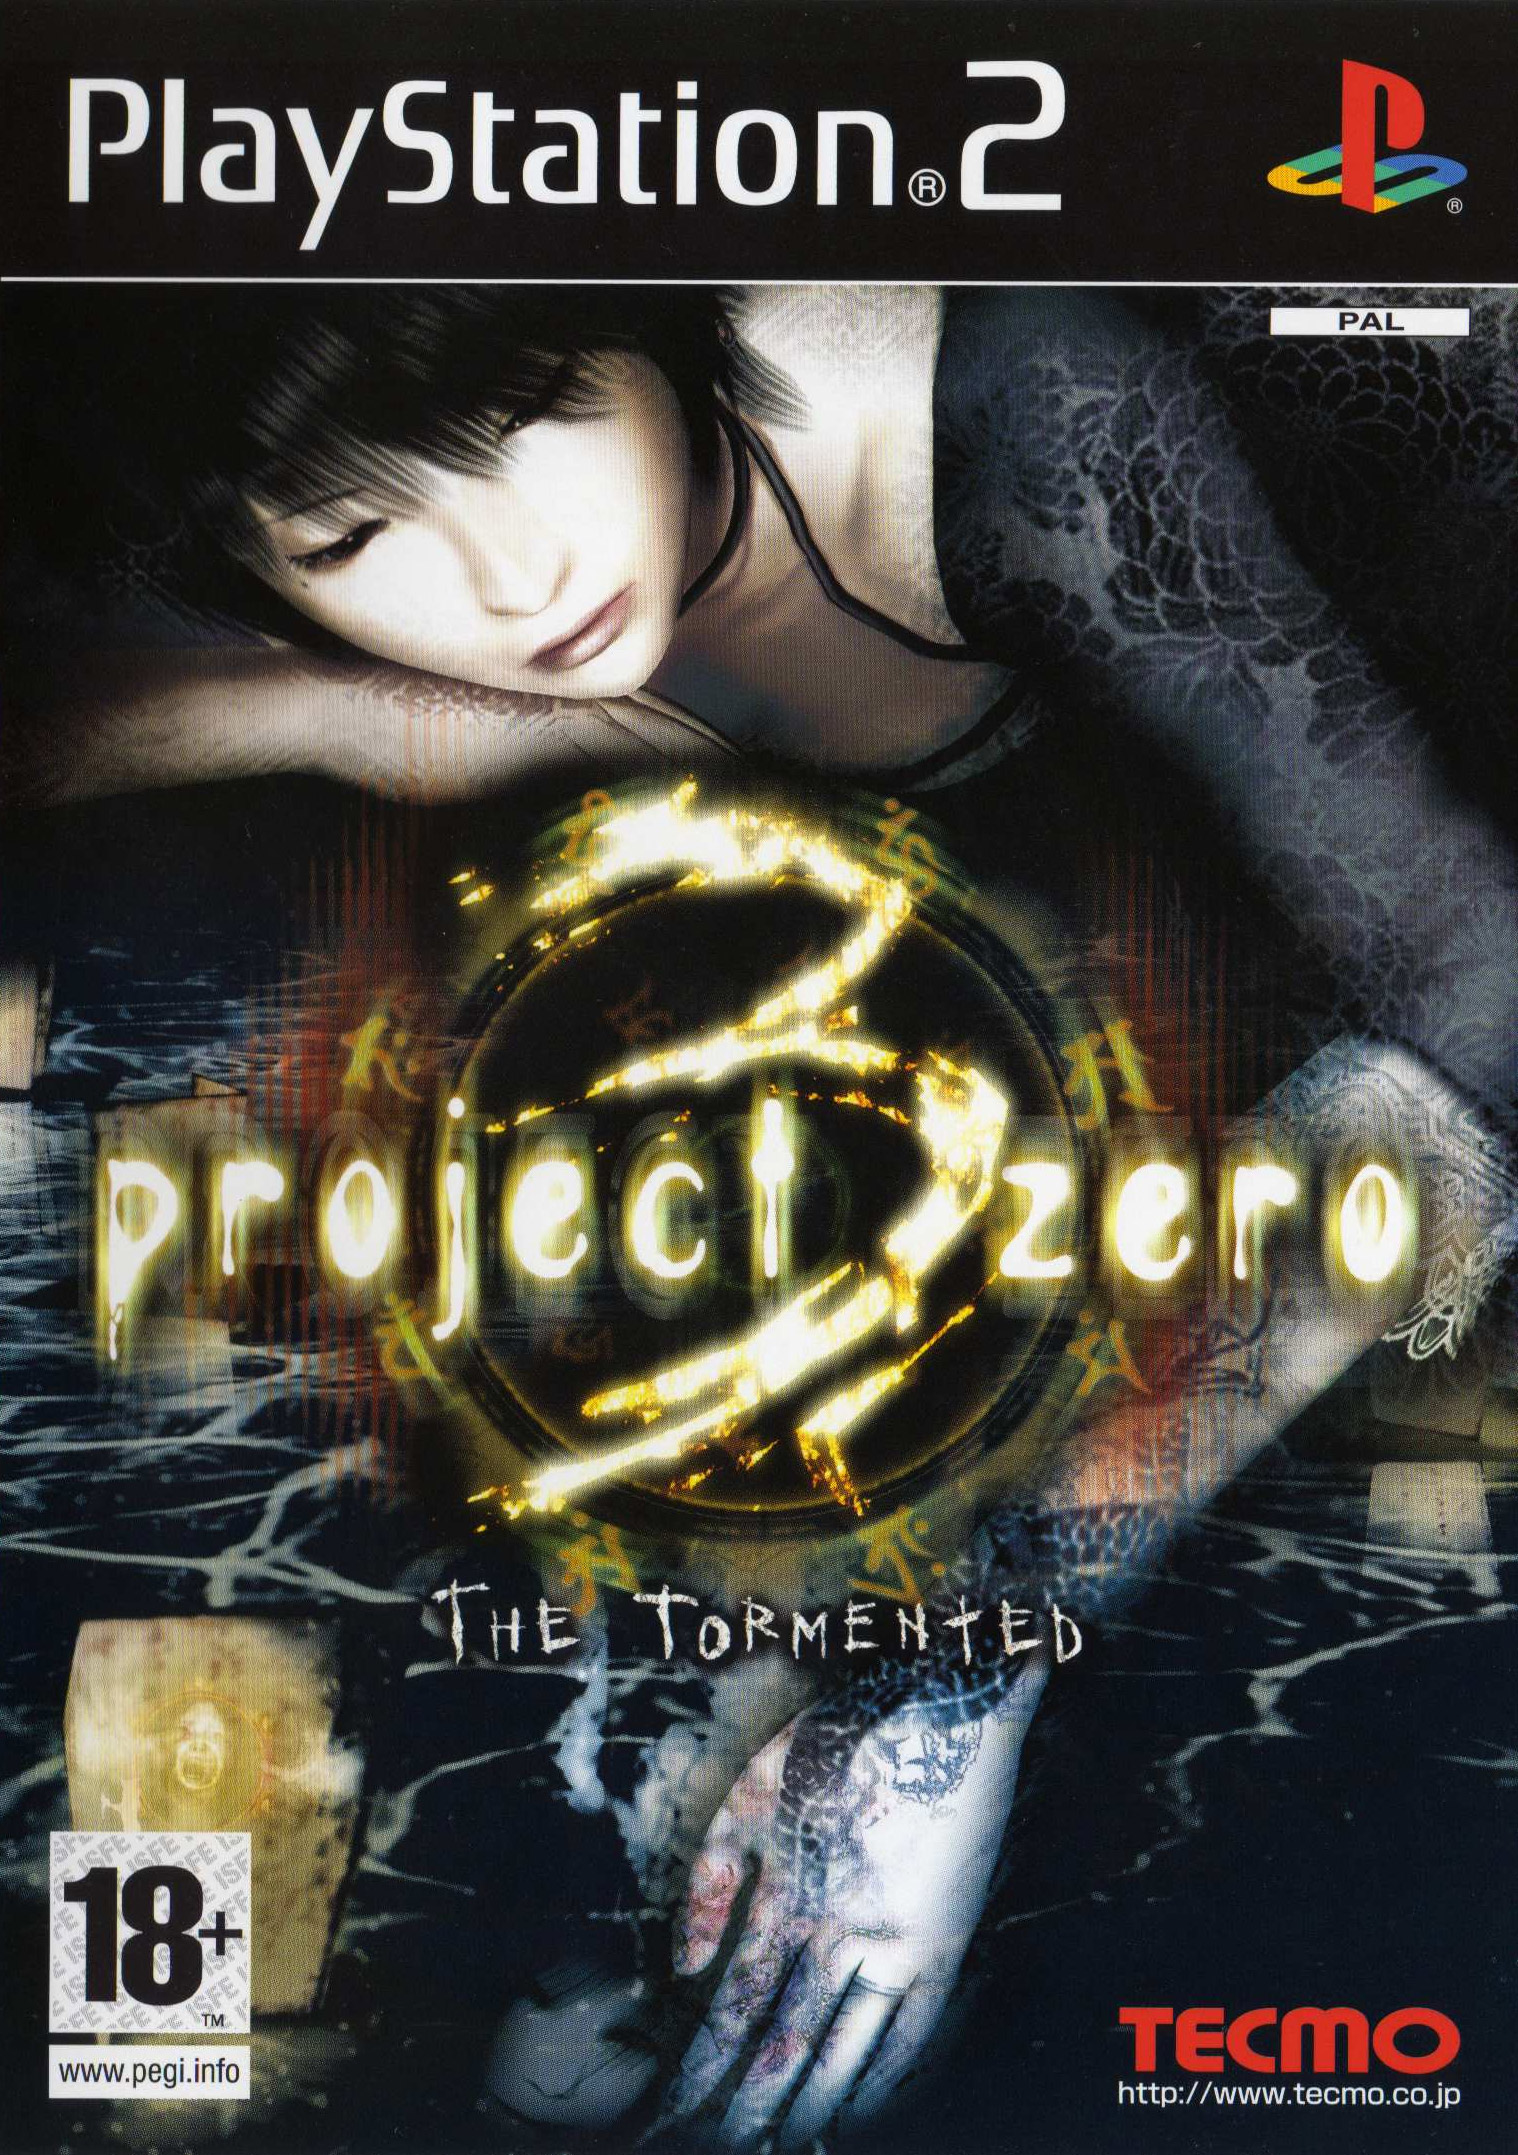 Project Zero 3: The Tormented PS2 comprar: Ultimagame